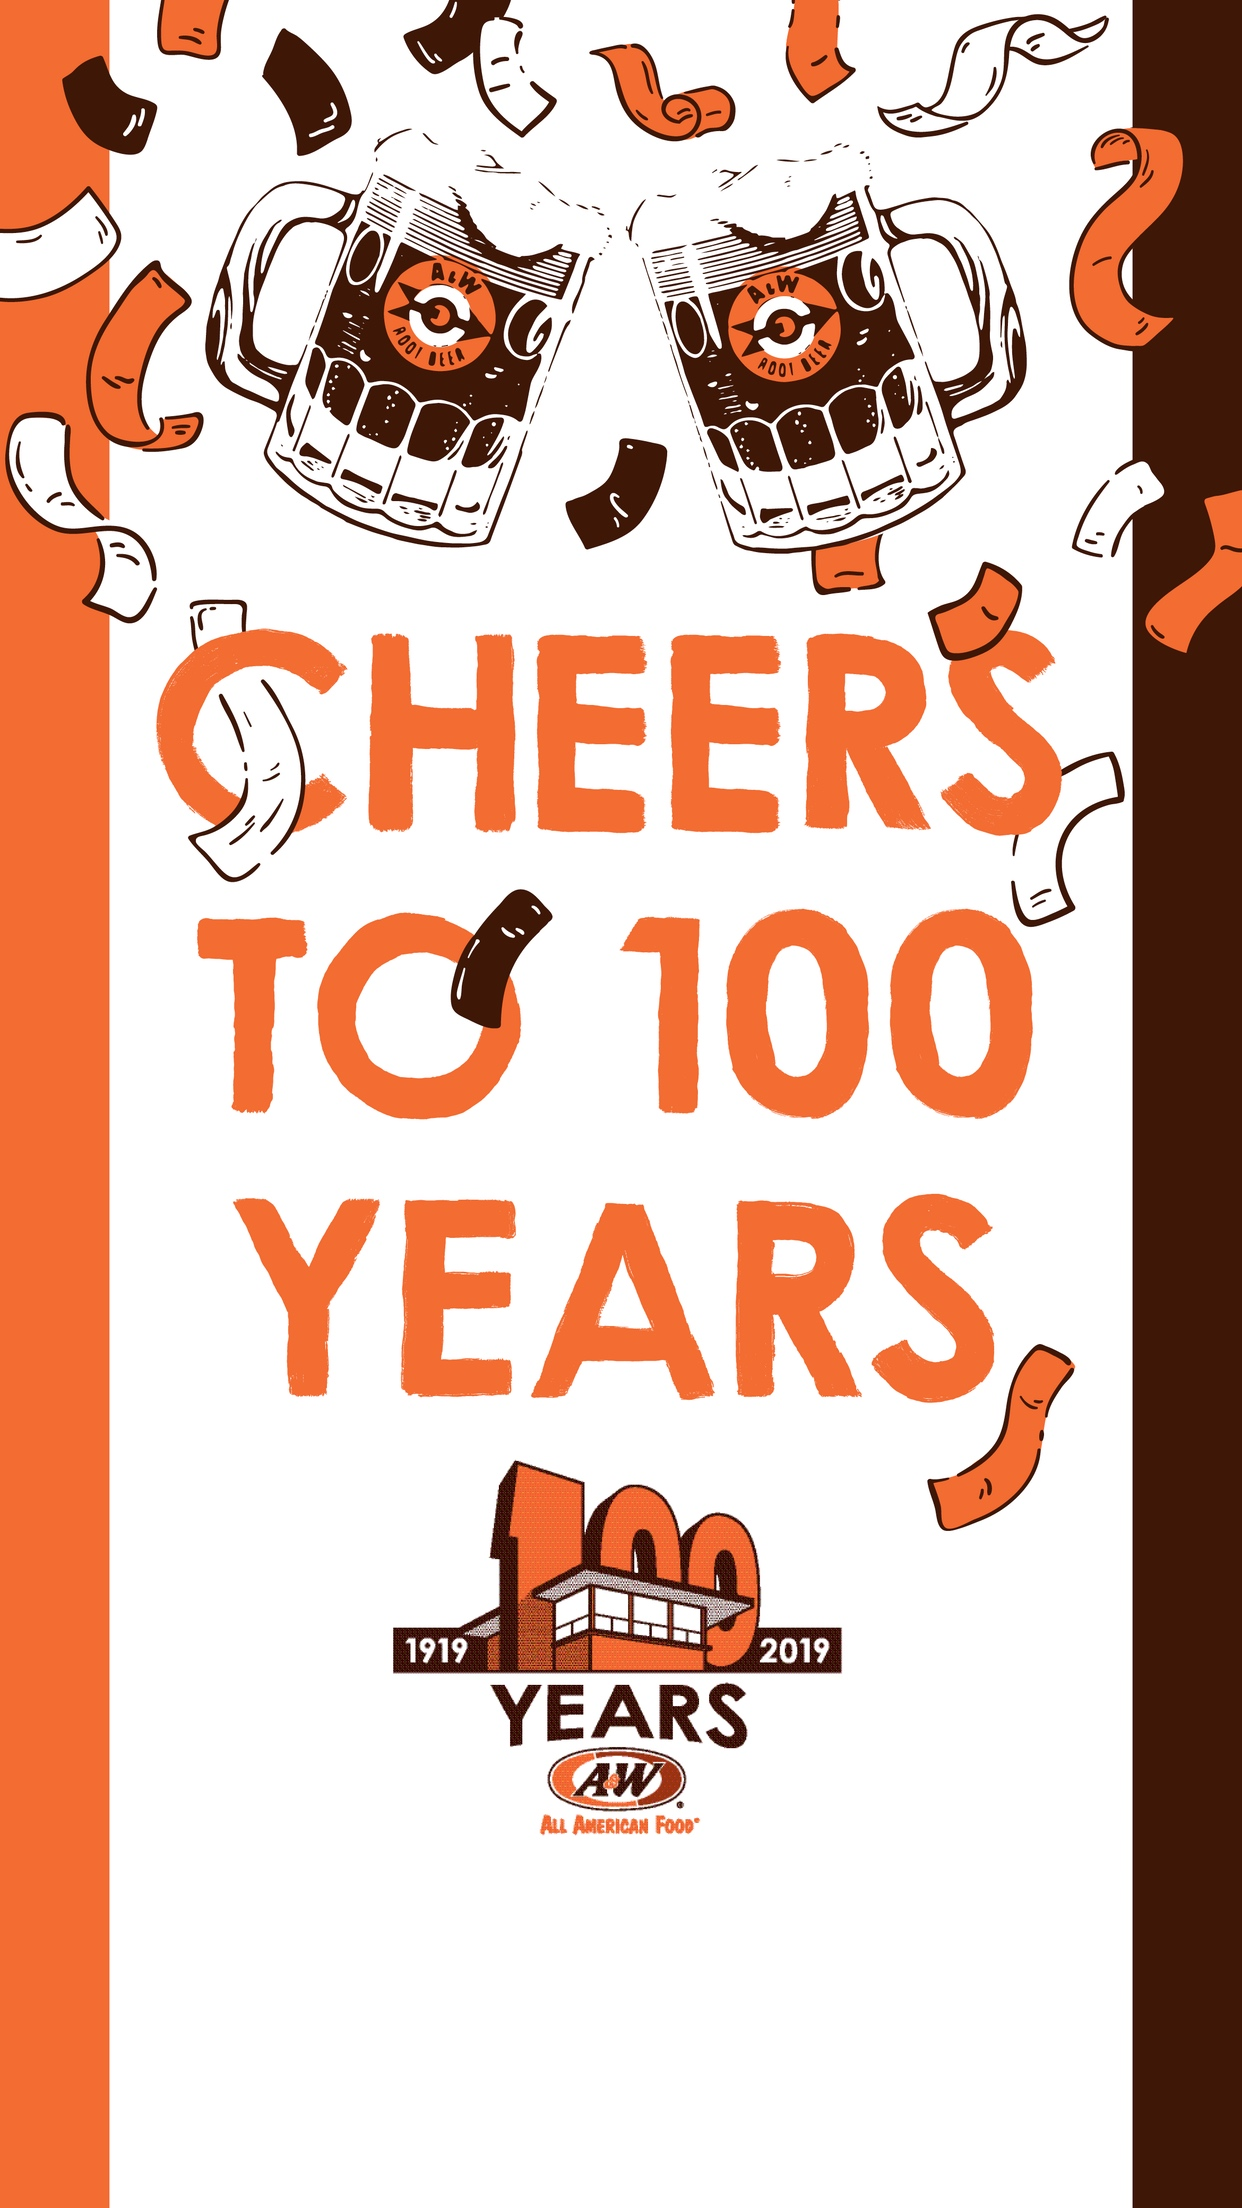 White background with orange on left side, brown on right side. Two A&W Root Beer mugs clinking together with 'Cheers to 100 Years' text and A&W Restaurants logo